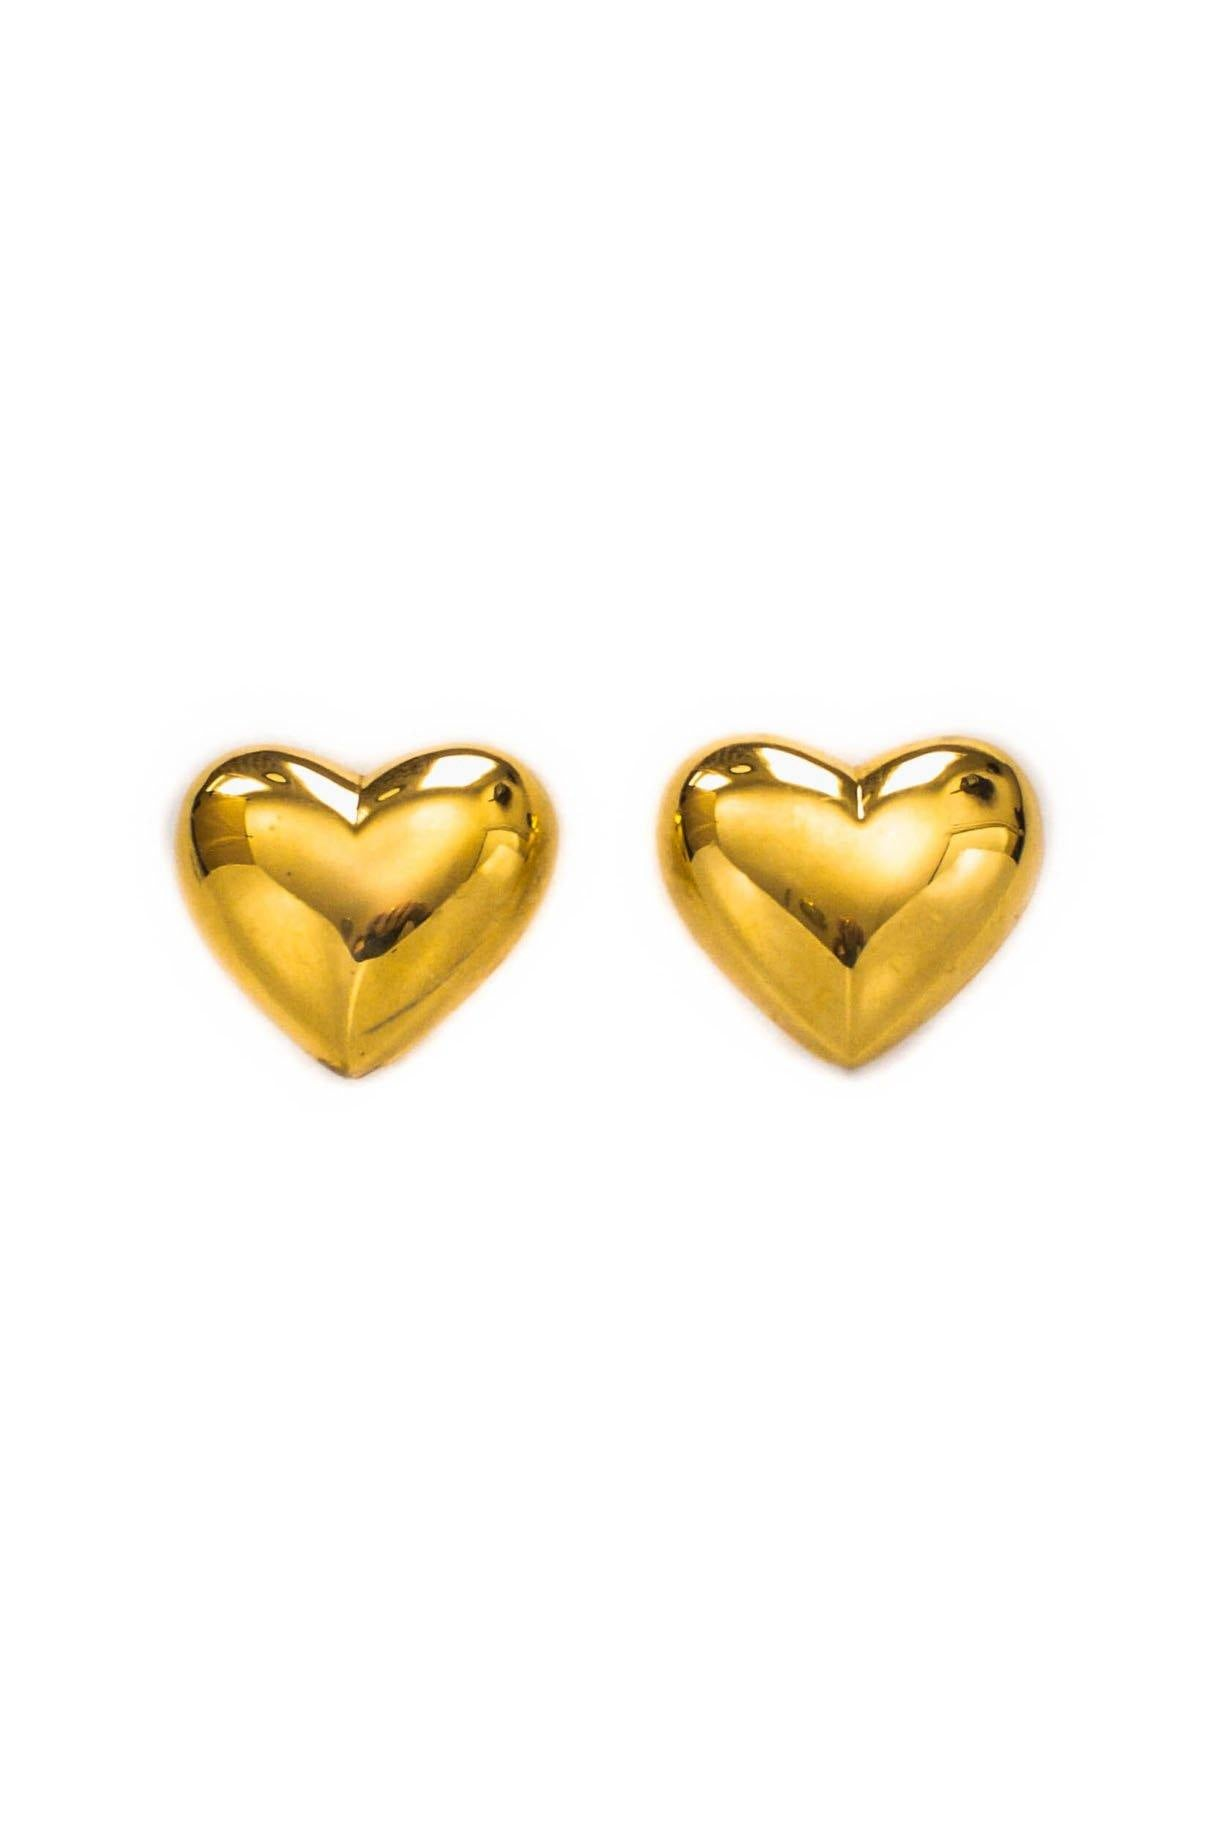 Vintage Puffy Heart Clip-on Earrings from Sweet and Spark